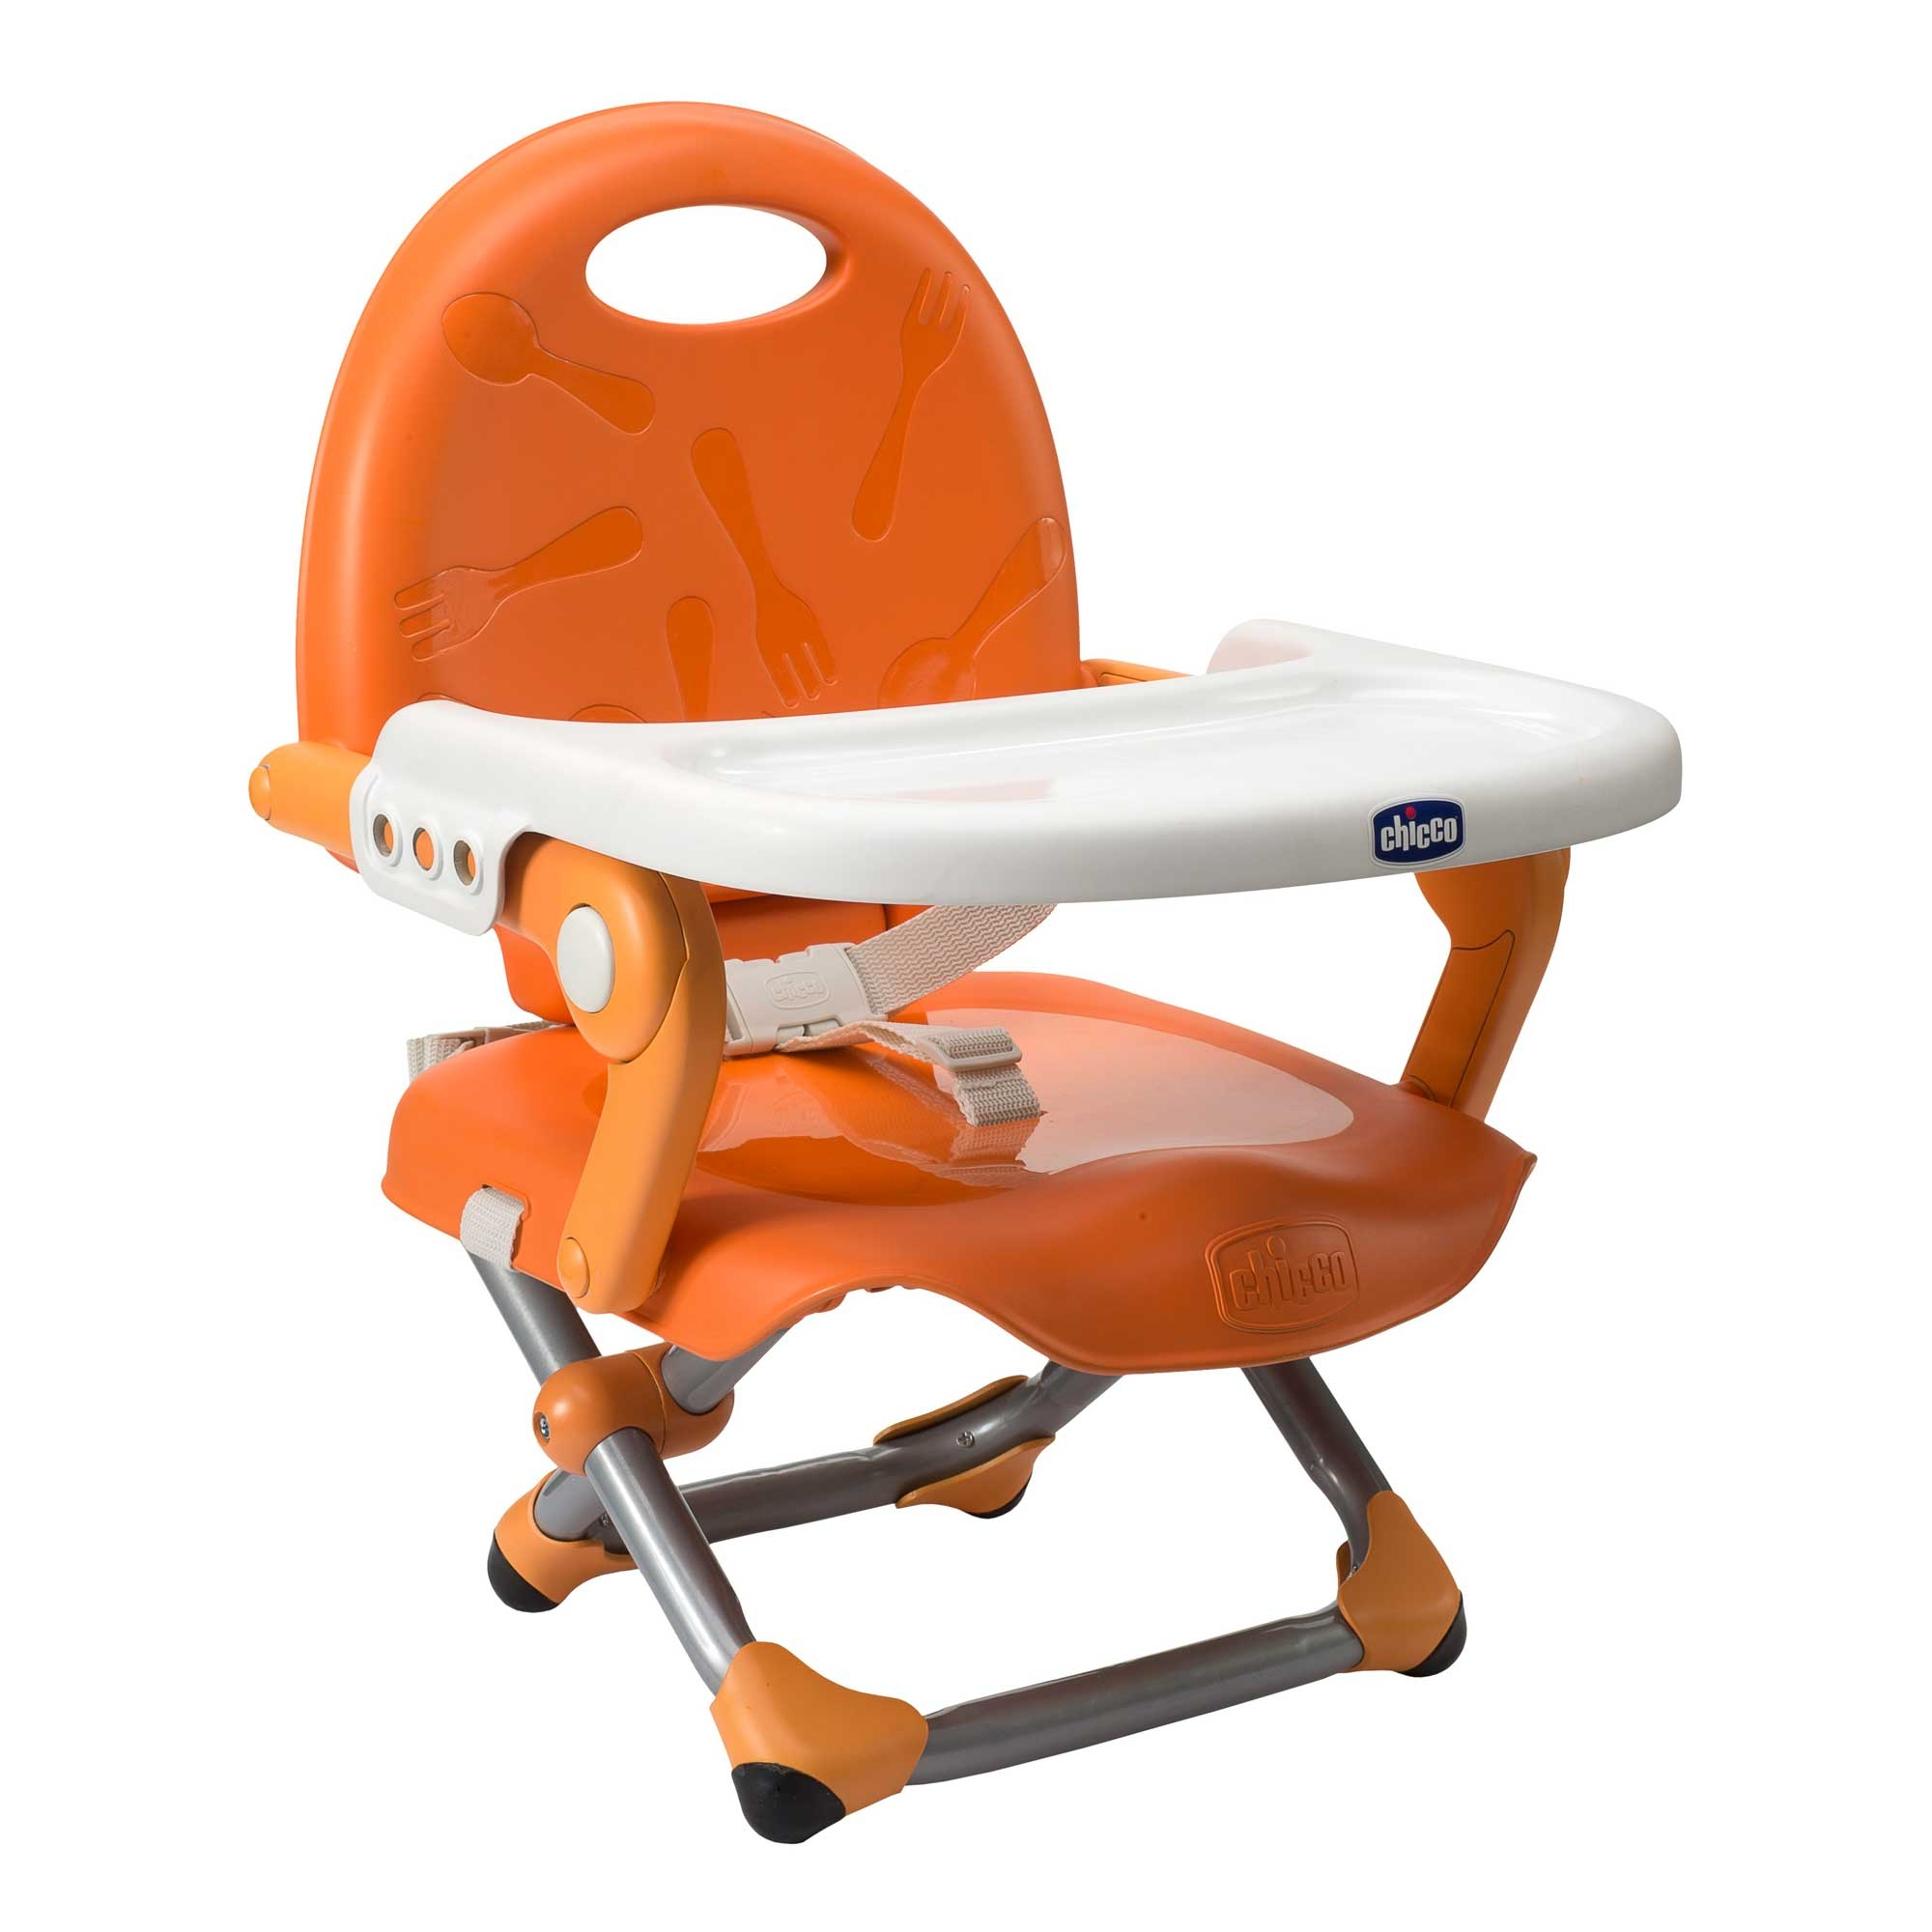 Details about Chicco Pocket Snack Booster Seat High Chair 0 3 Years